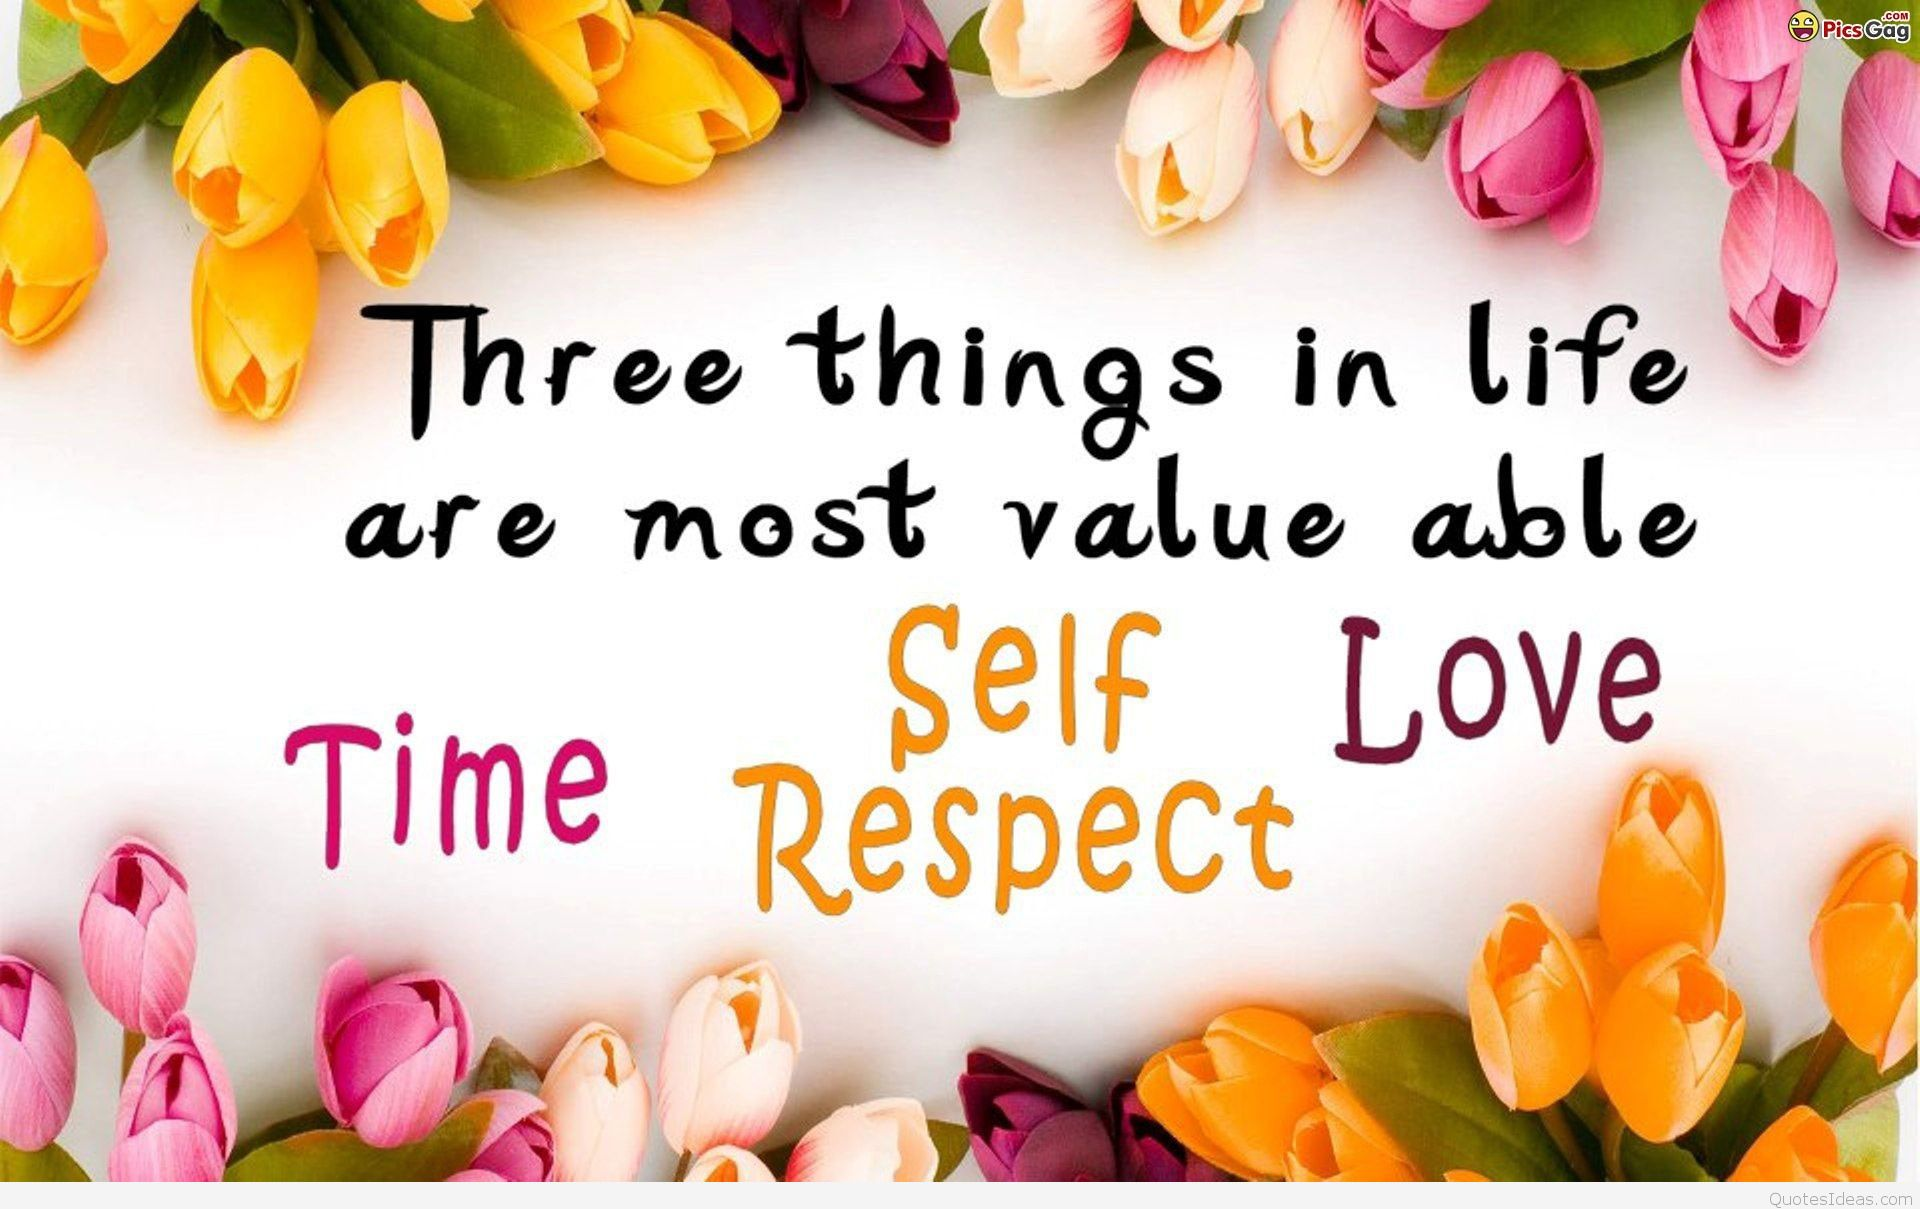 Three Things In Life Quote Wallpaper Hd - Birthday Wishes 30 Years Old Girl - HD Wallpaper